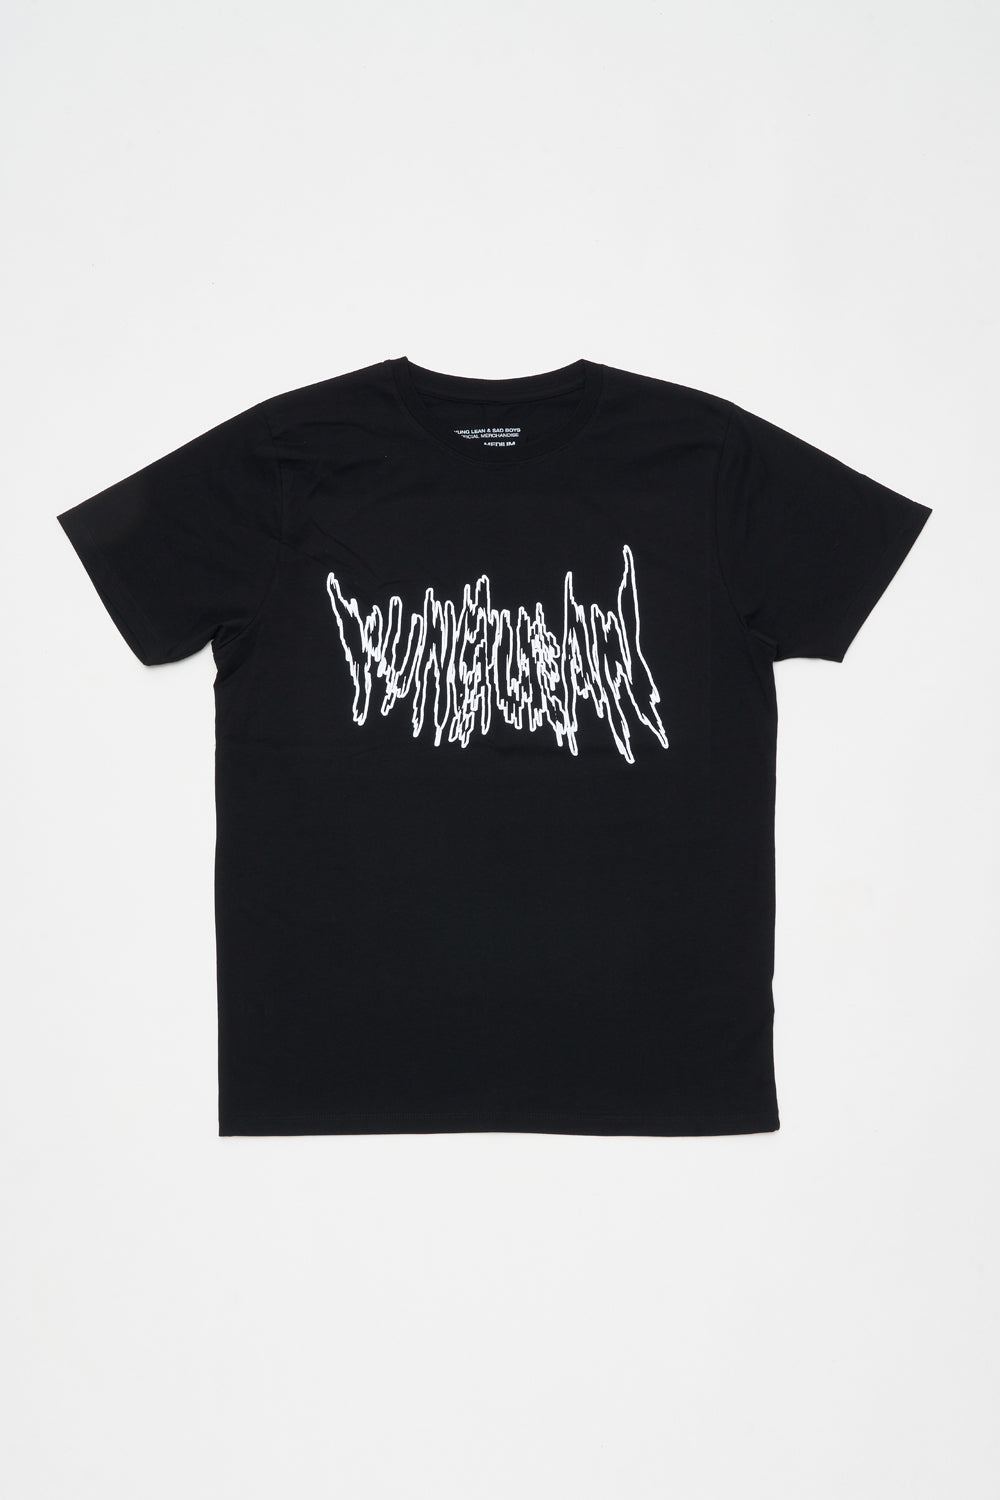 METAL LOGO T-SHIRT (BLACK)